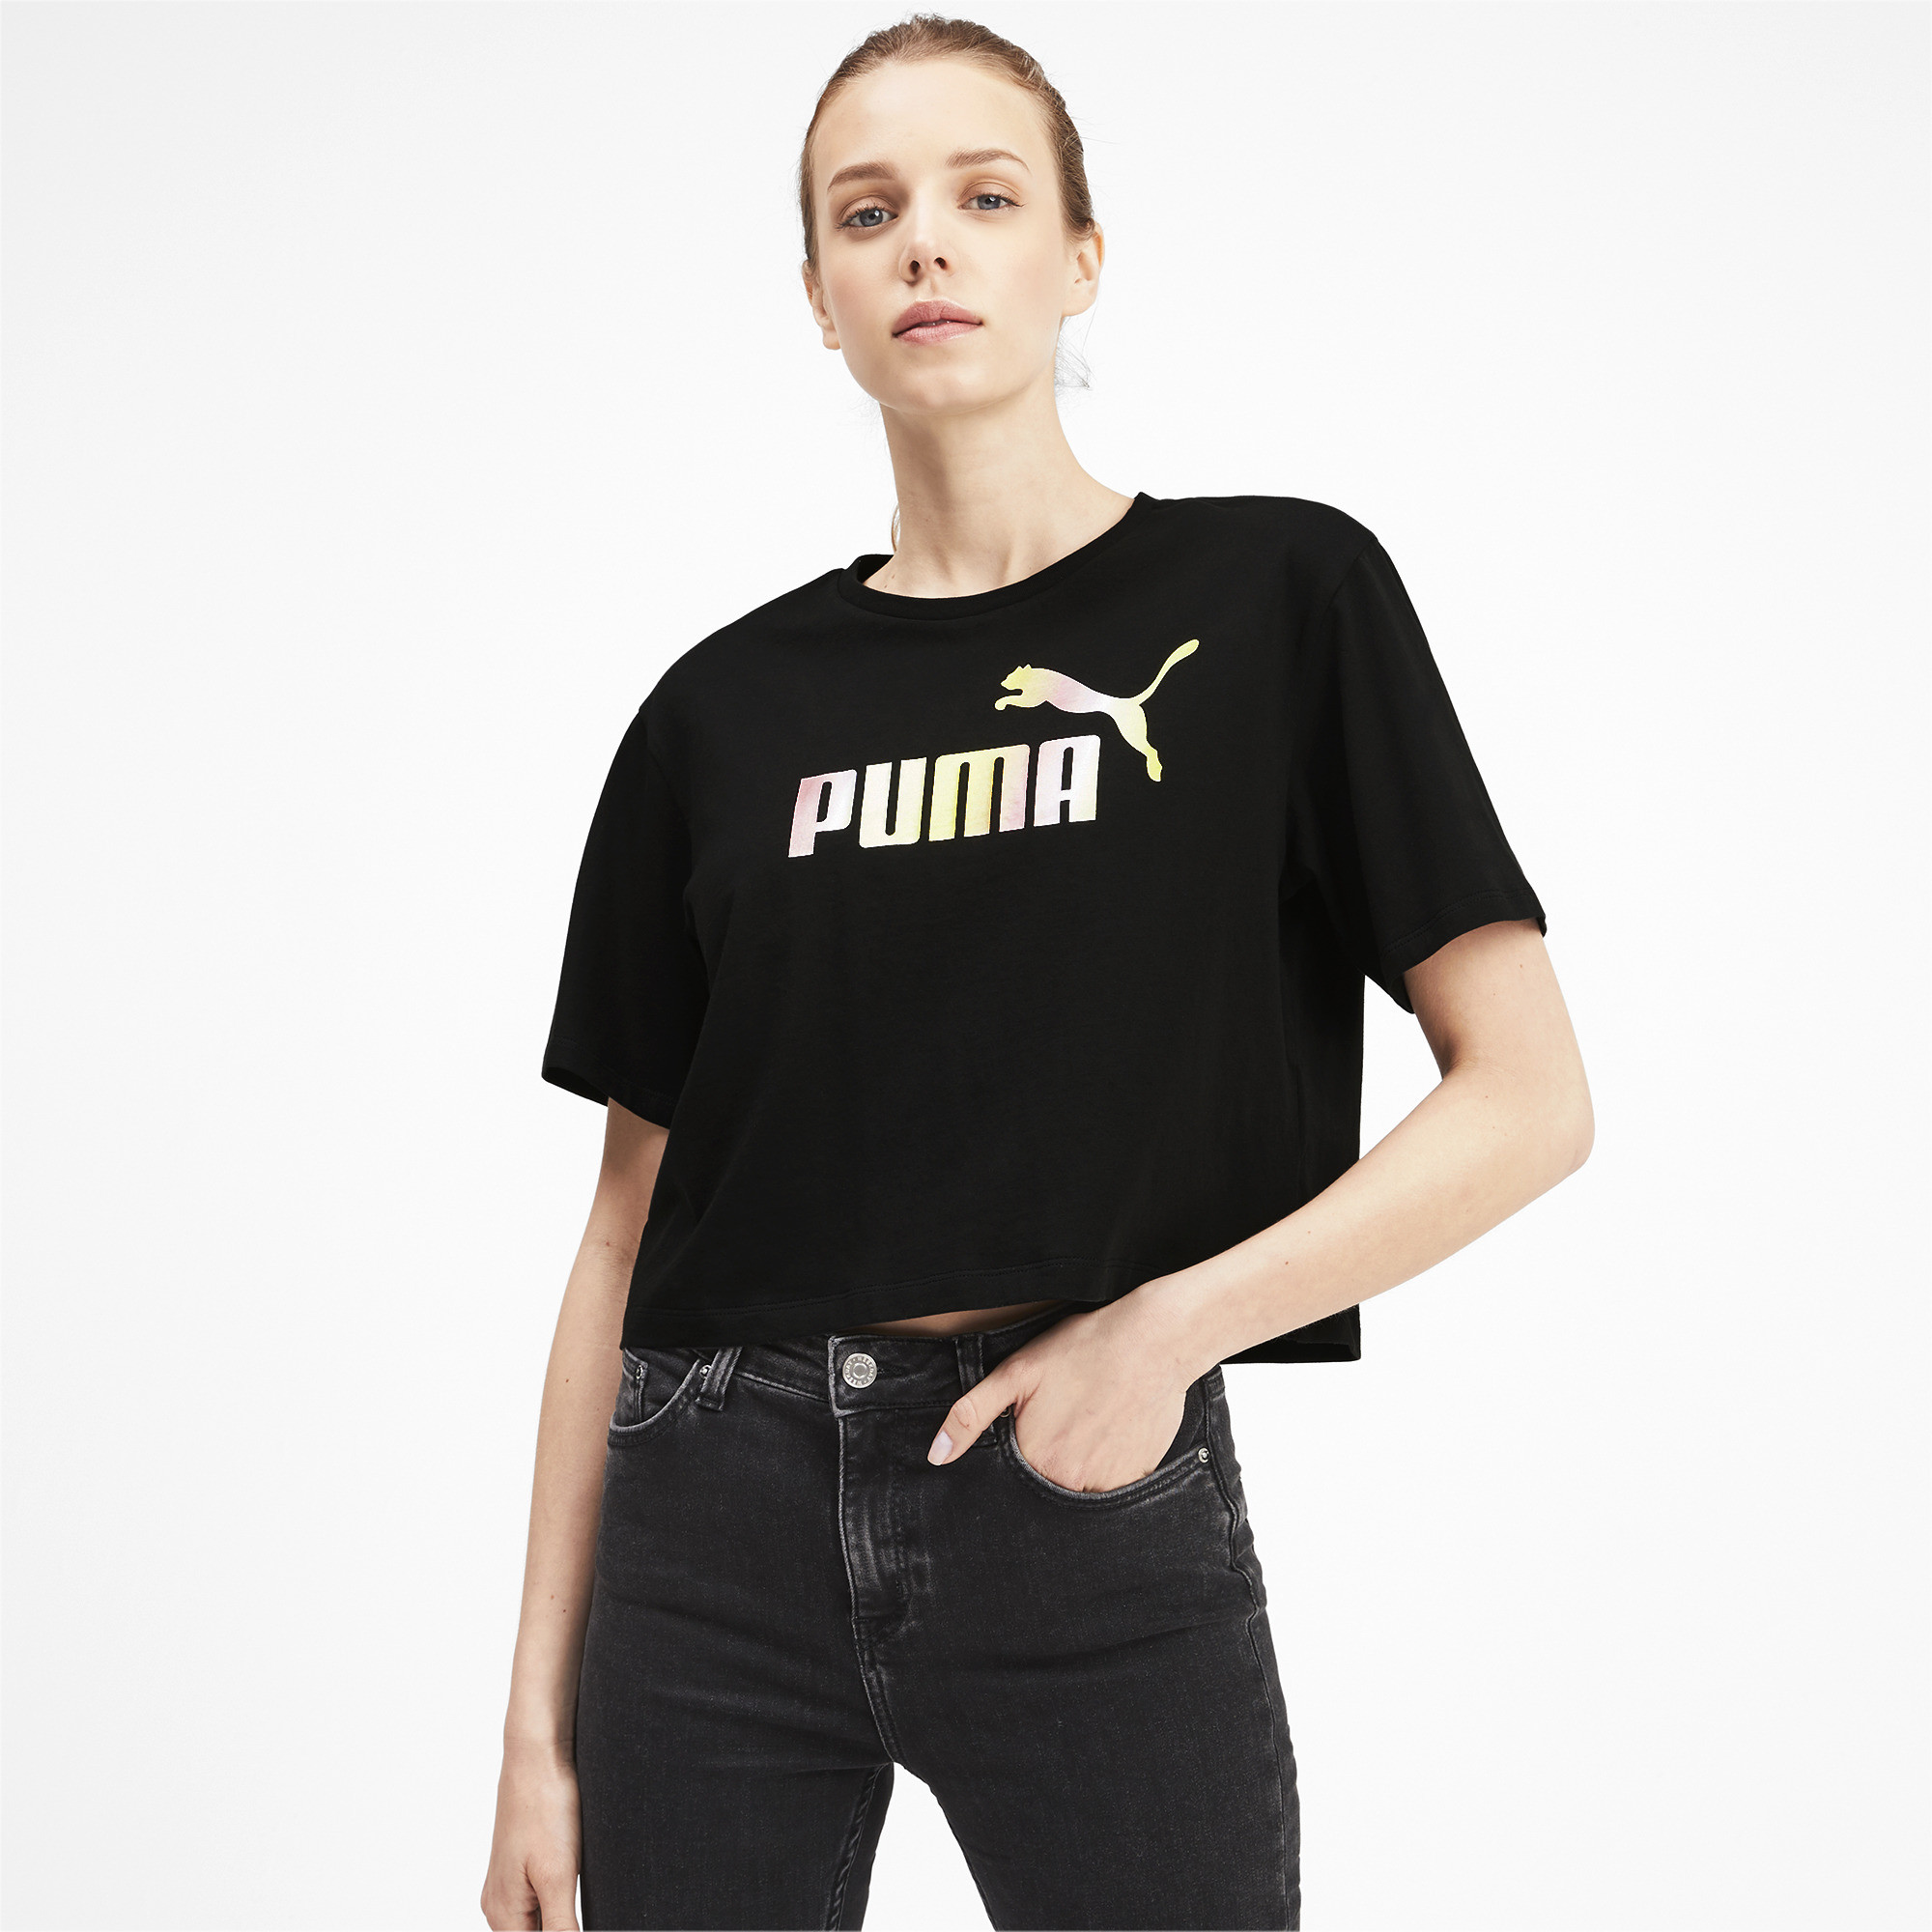 PUMA-Women-039-s-Cropped-Logo-Tee-Women-Crop-Top-Basics thumbnail 14